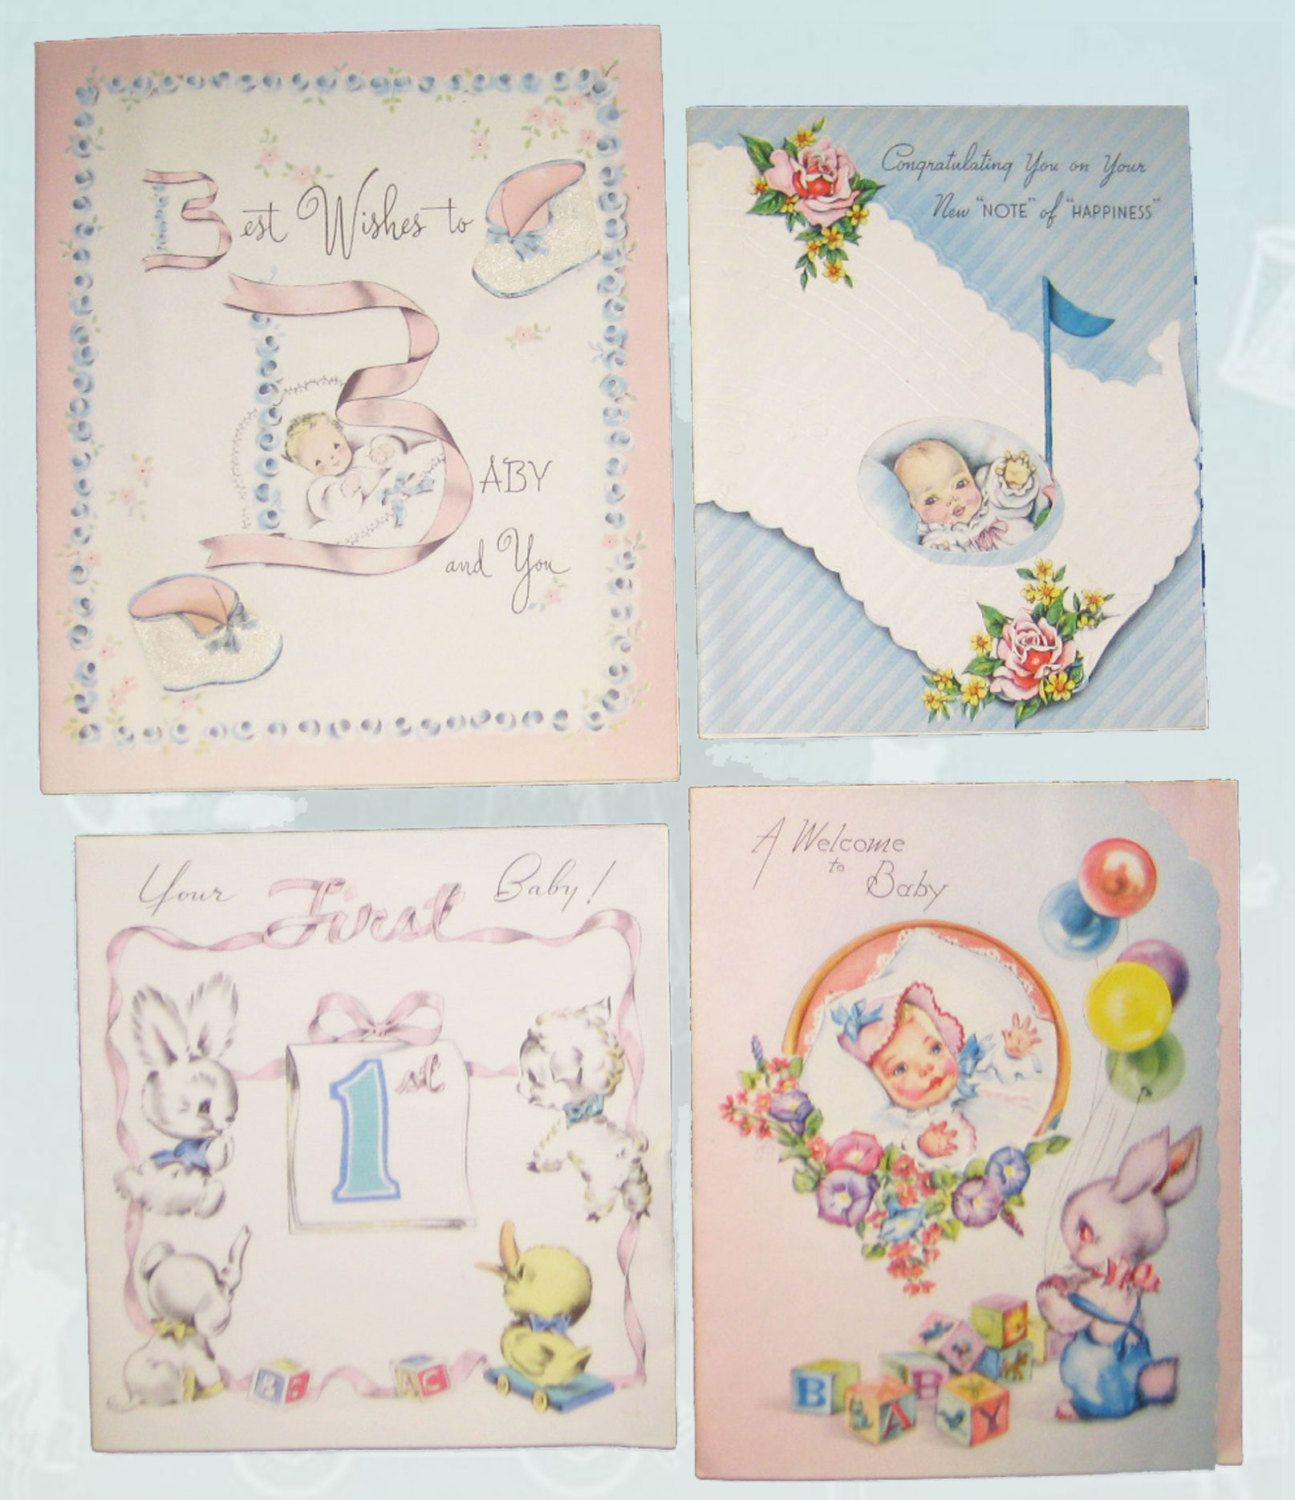 Vintage new baby congratulations greeting cards retro 1940s baby vintage new baby congratulations greeting cards retro 1940s baby cards for scrapbooking by 2kvintageshop on etsy kristyandbryce Images